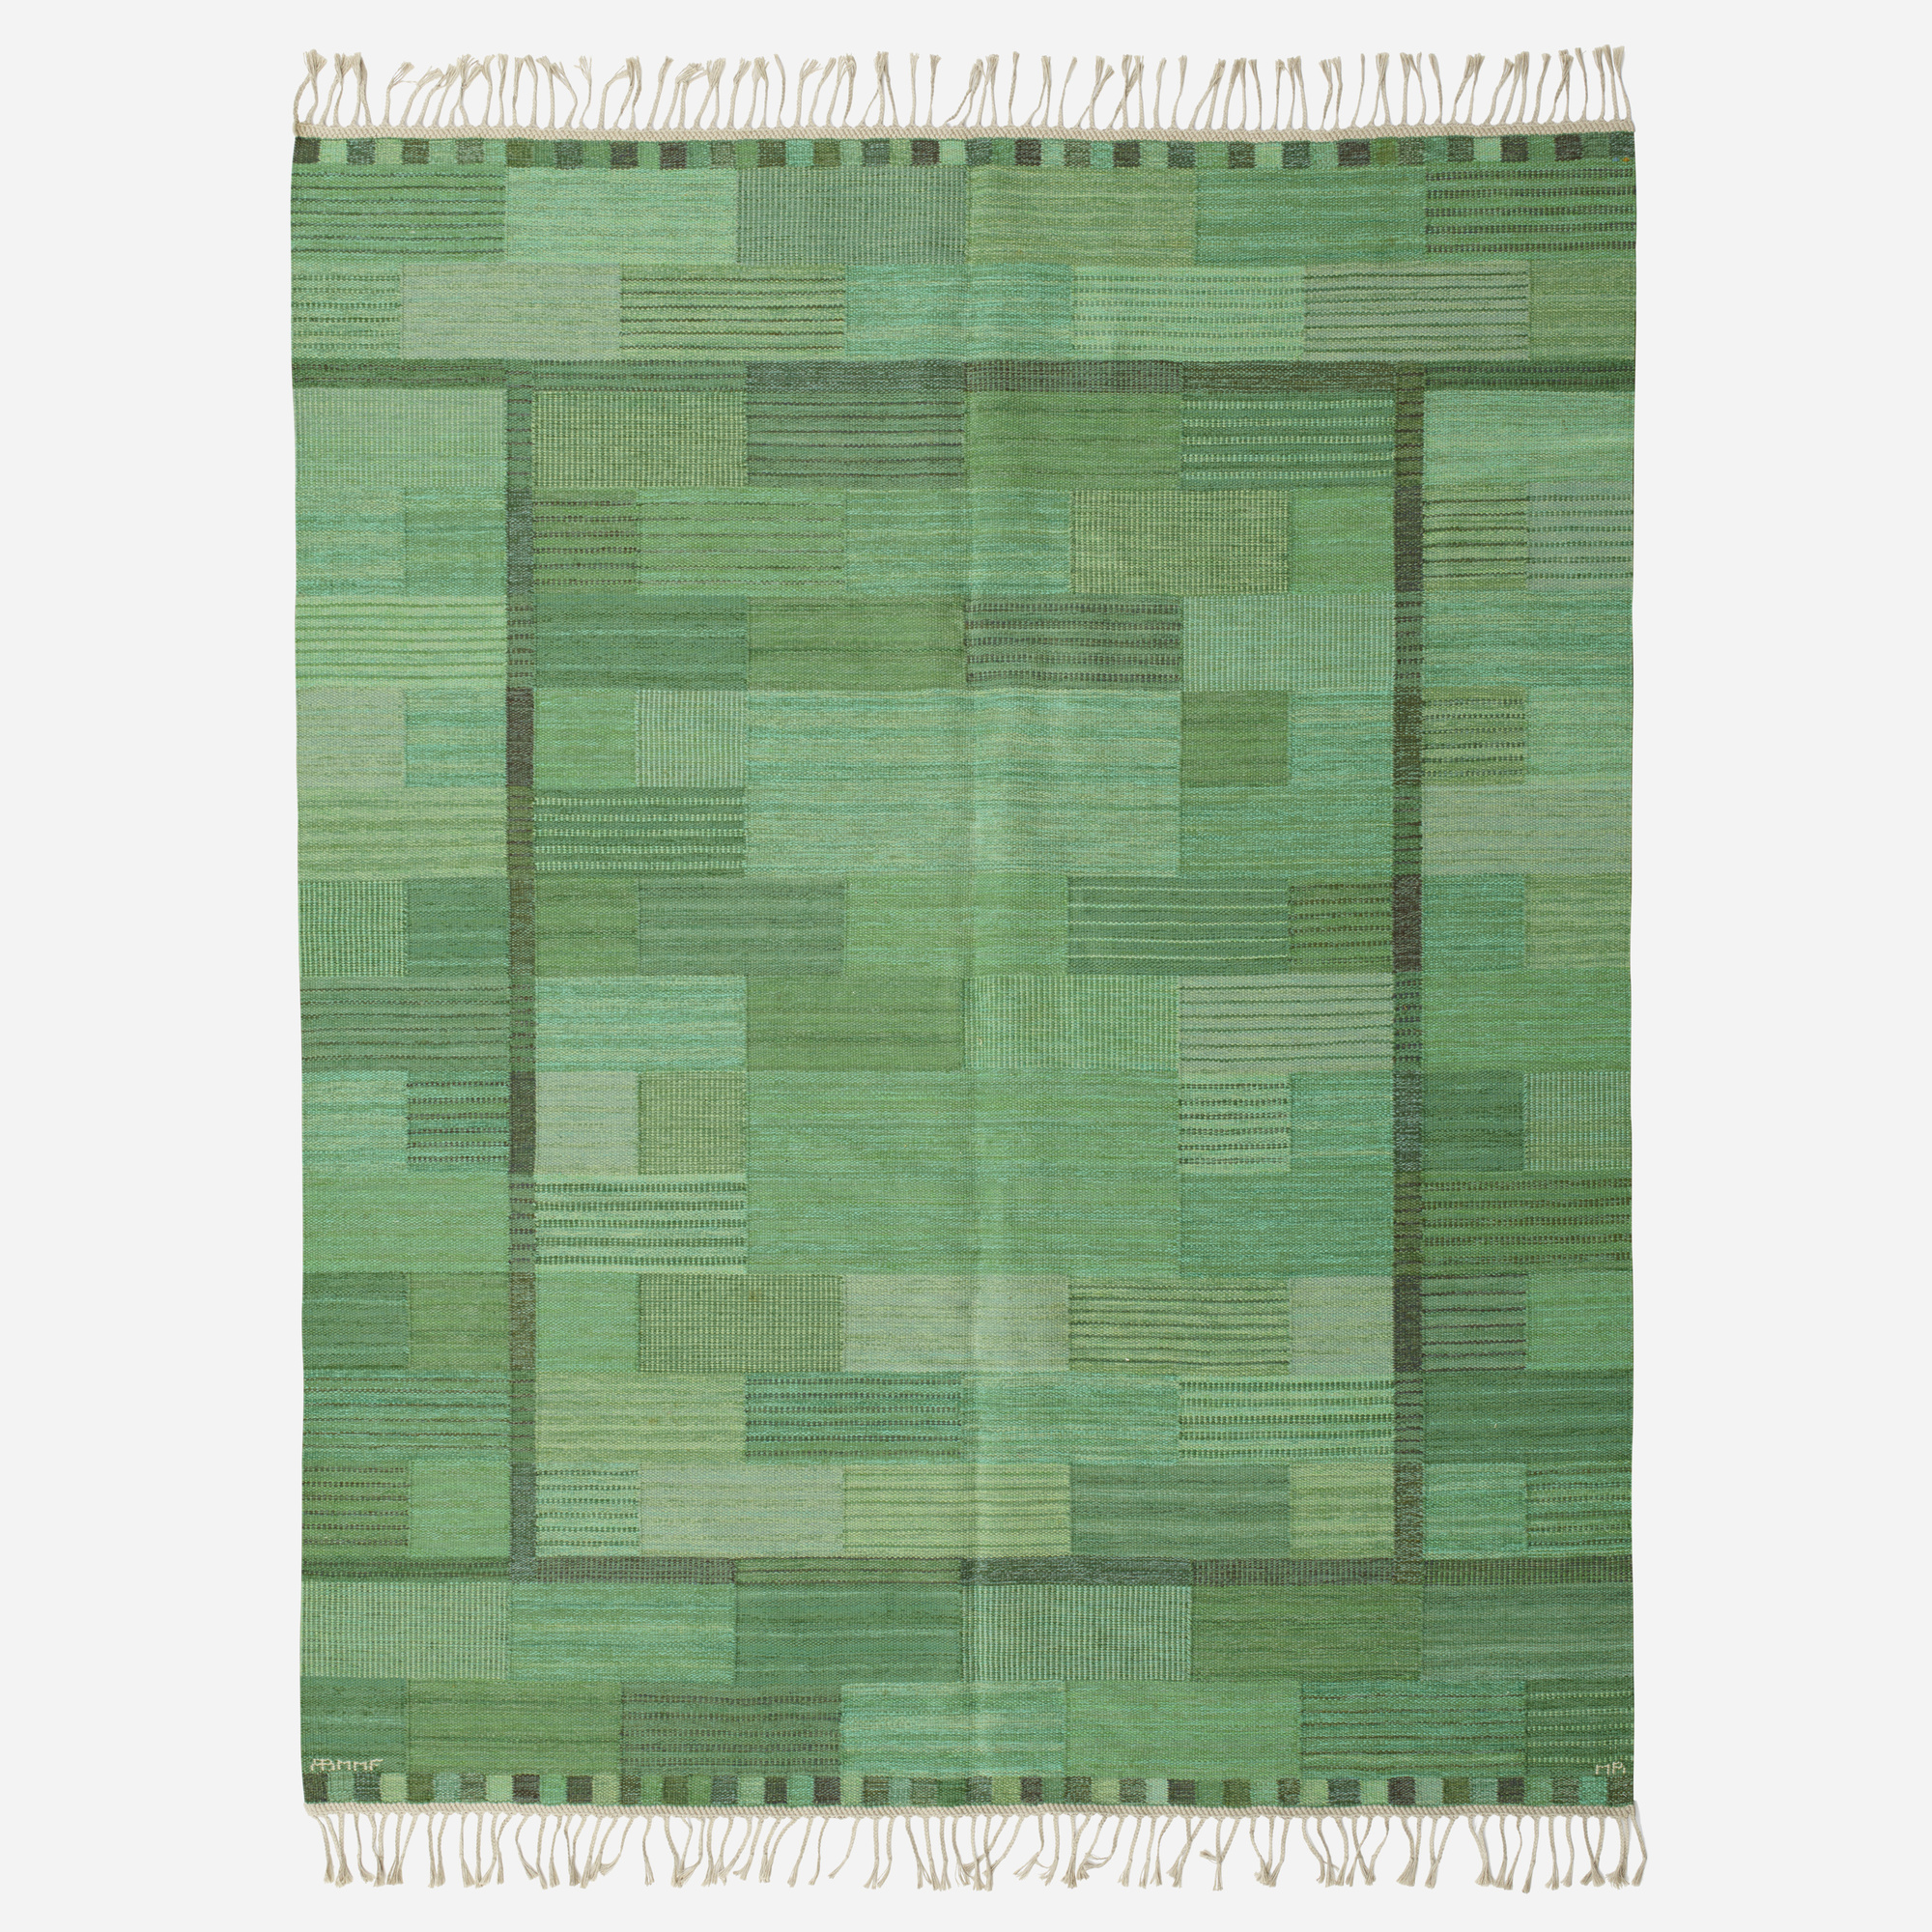 160: Marianne Richter / Fasad flatweave carpet (1 of 2)